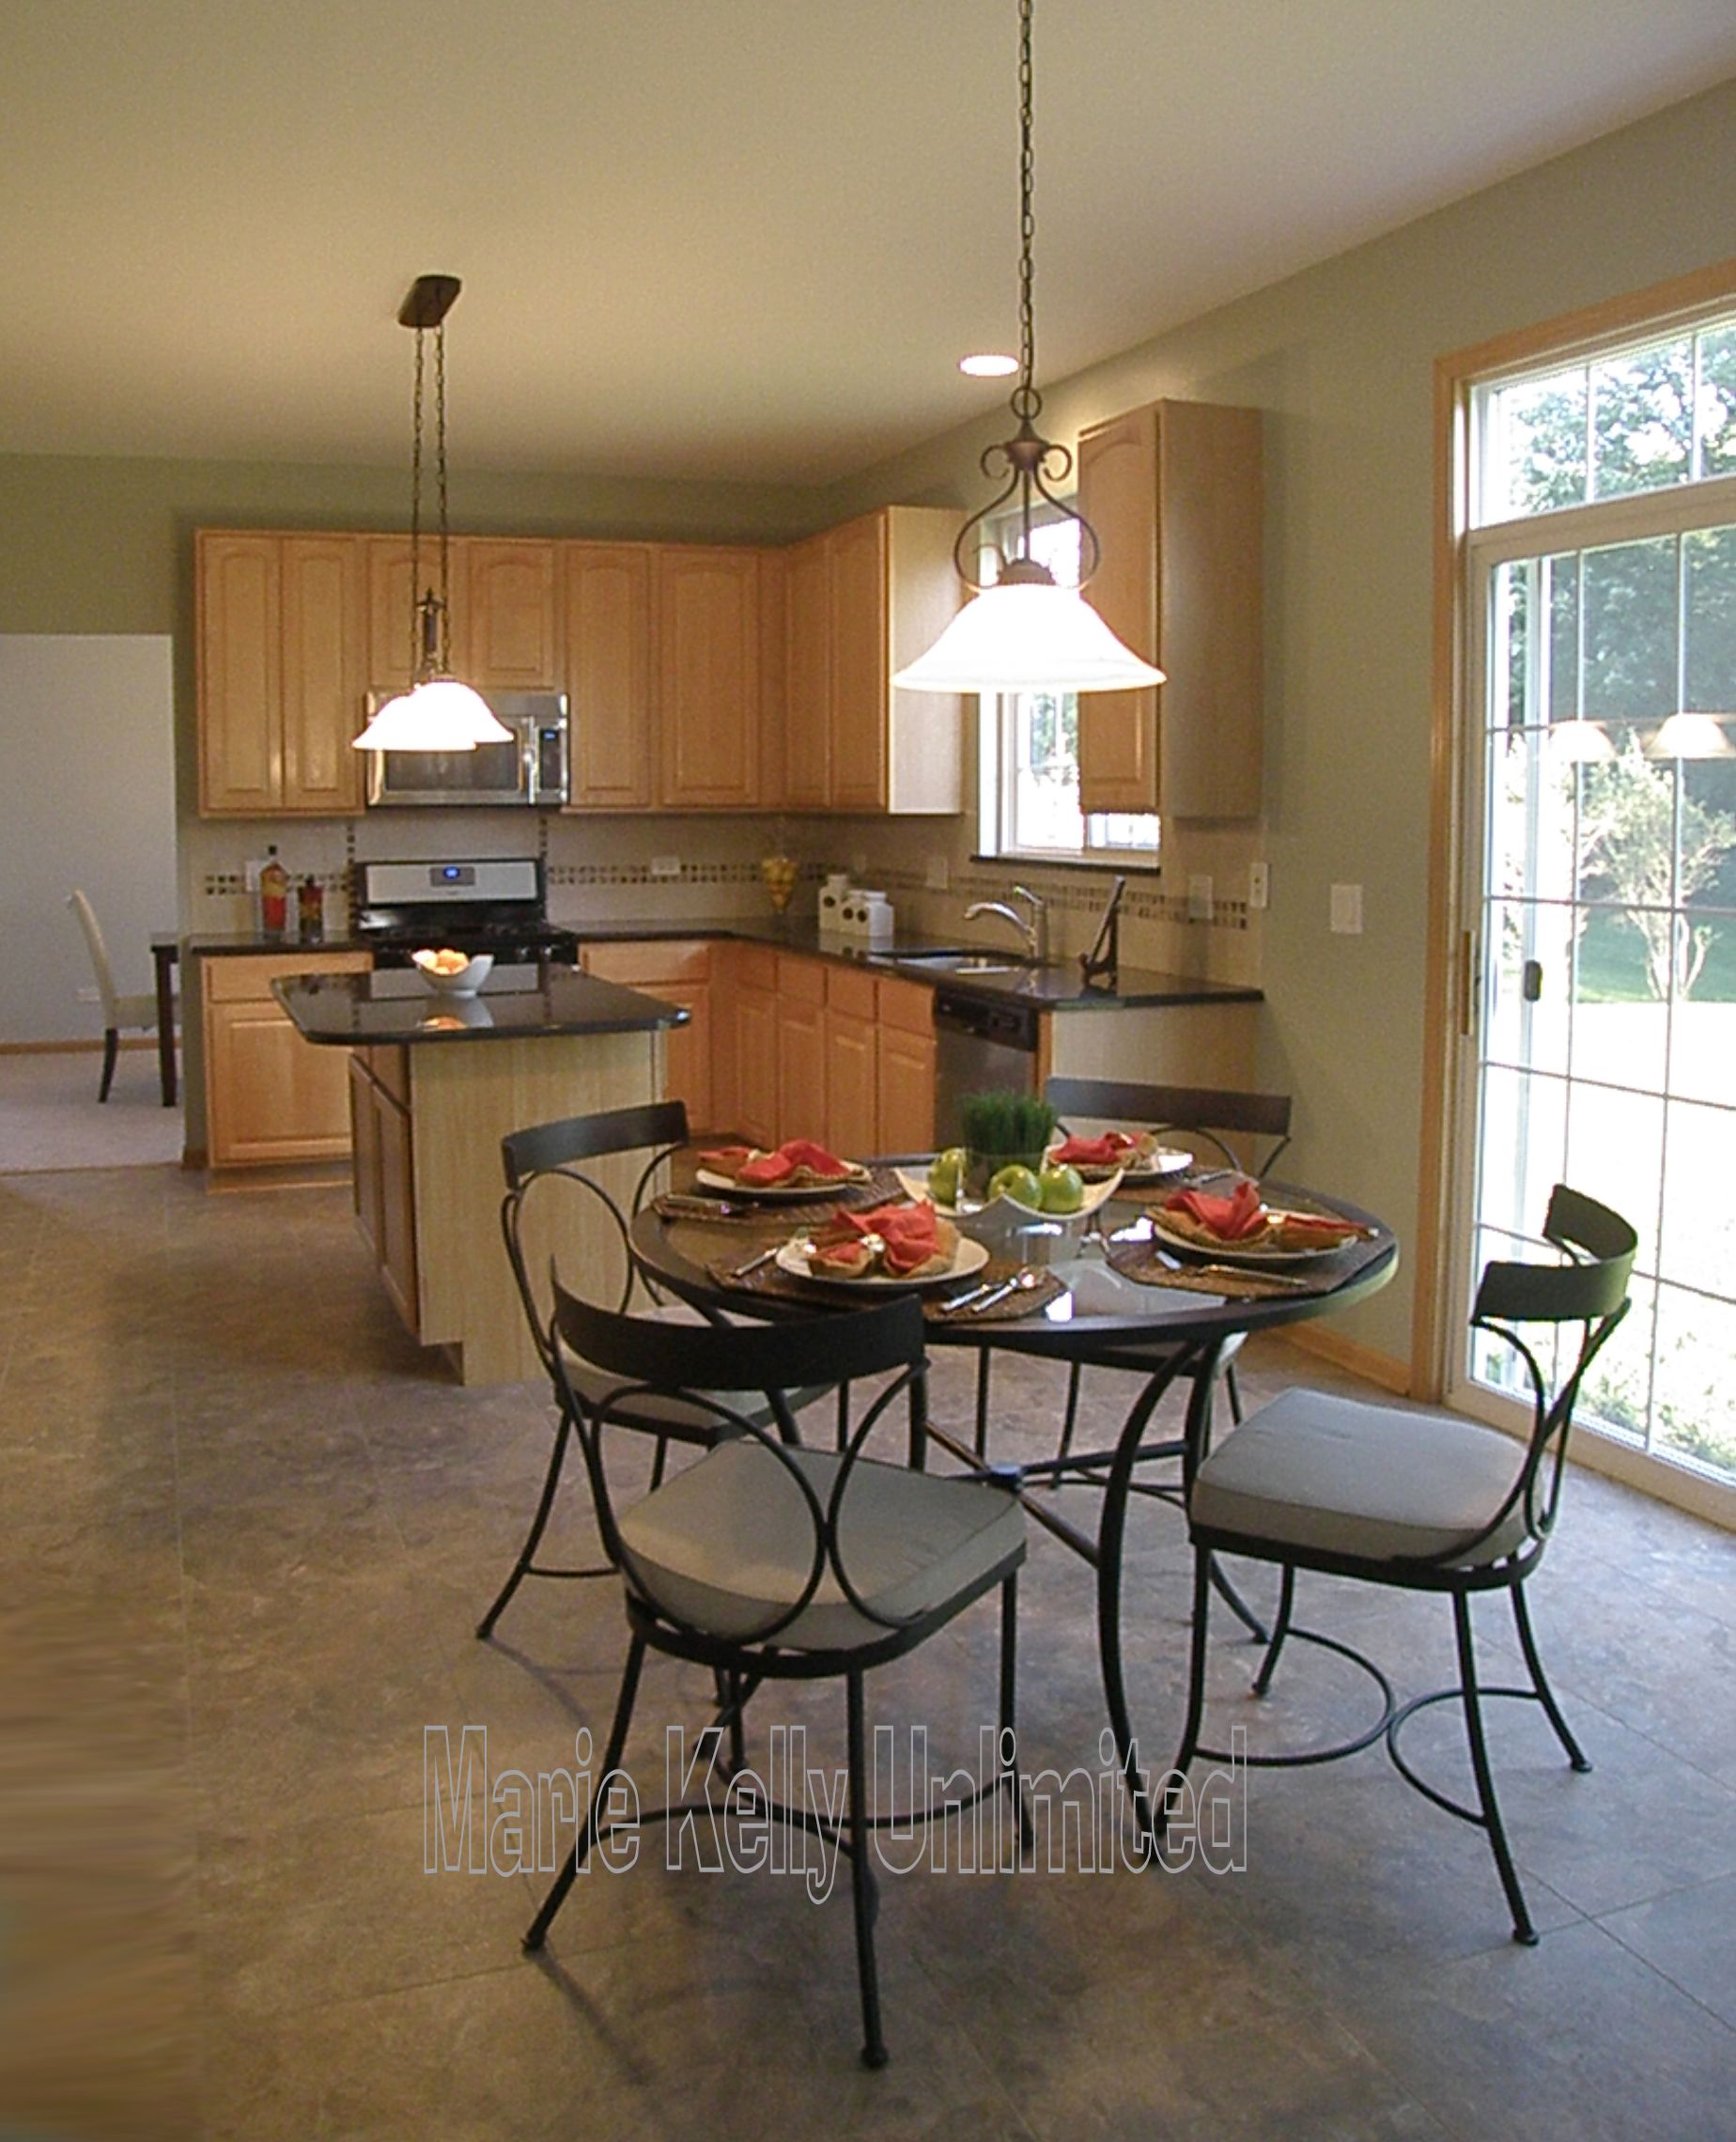 Interior Design Home Staging: Kitchens Create A Feeling Where Family